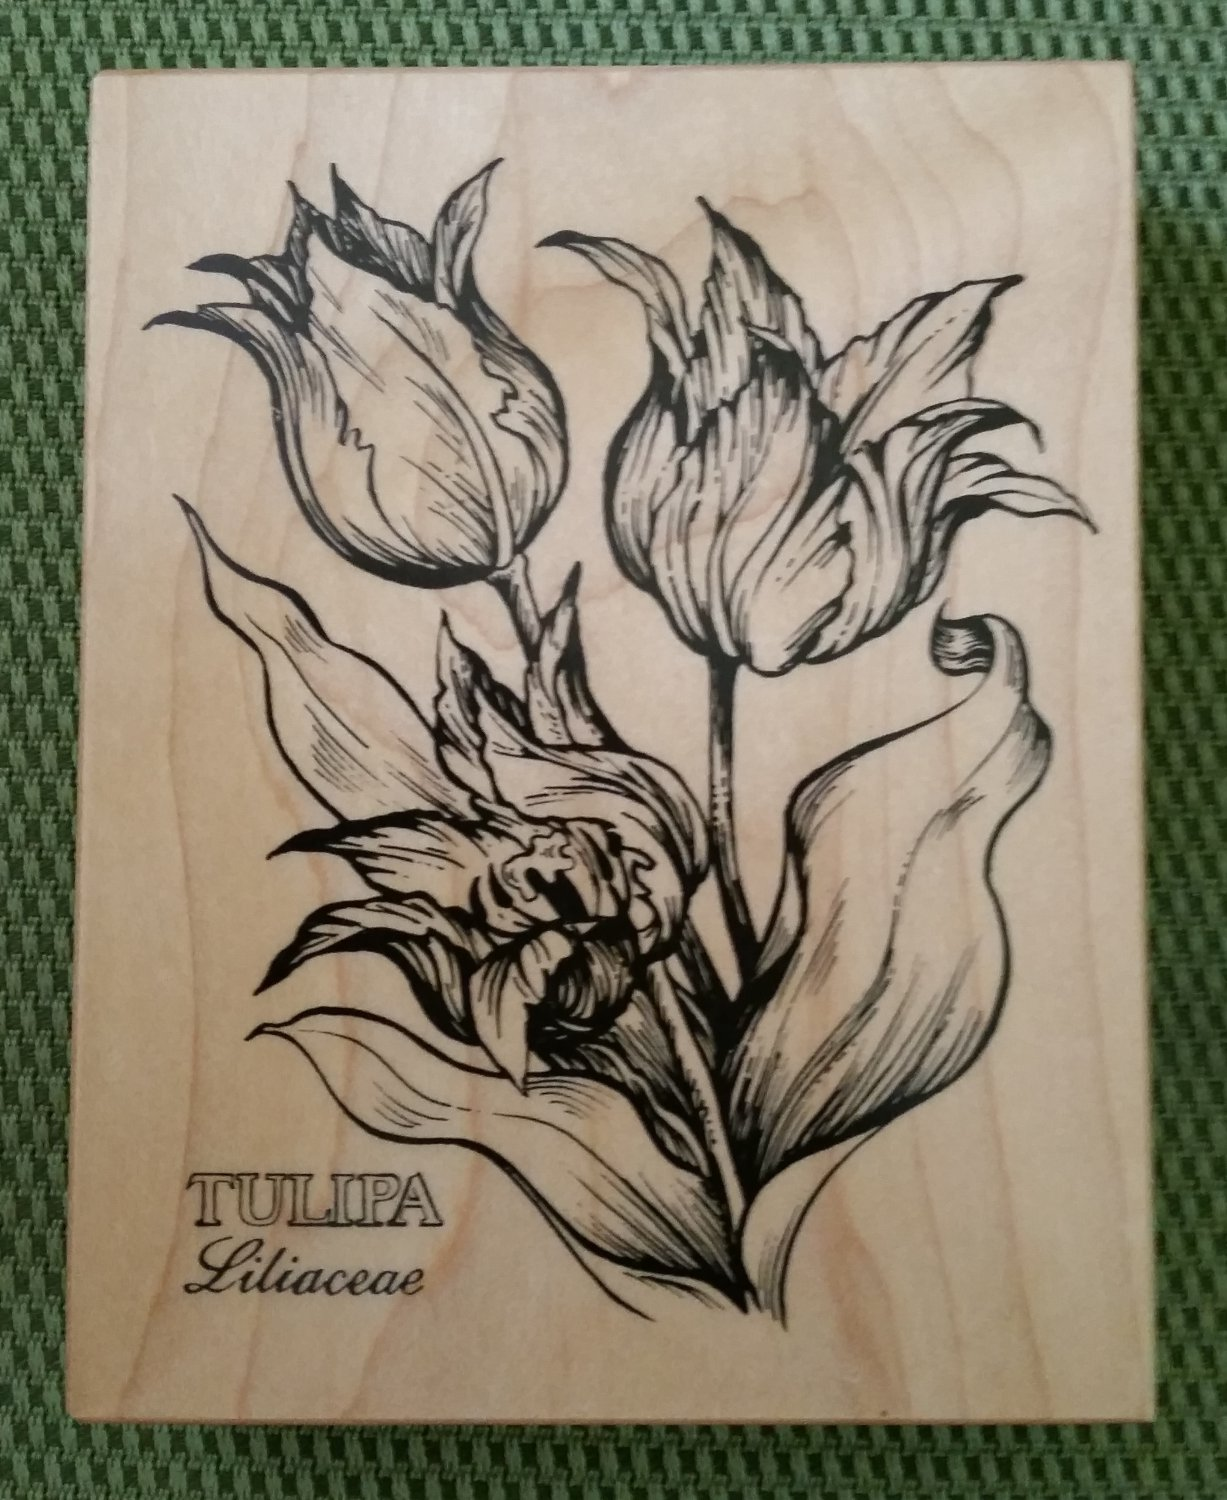 TULIPA/Tulips Liliaceae Flower Wood Mounted Rubber Stamp #K-622 by PSX-1993-MADE IN USA-RETIRED-NEW!